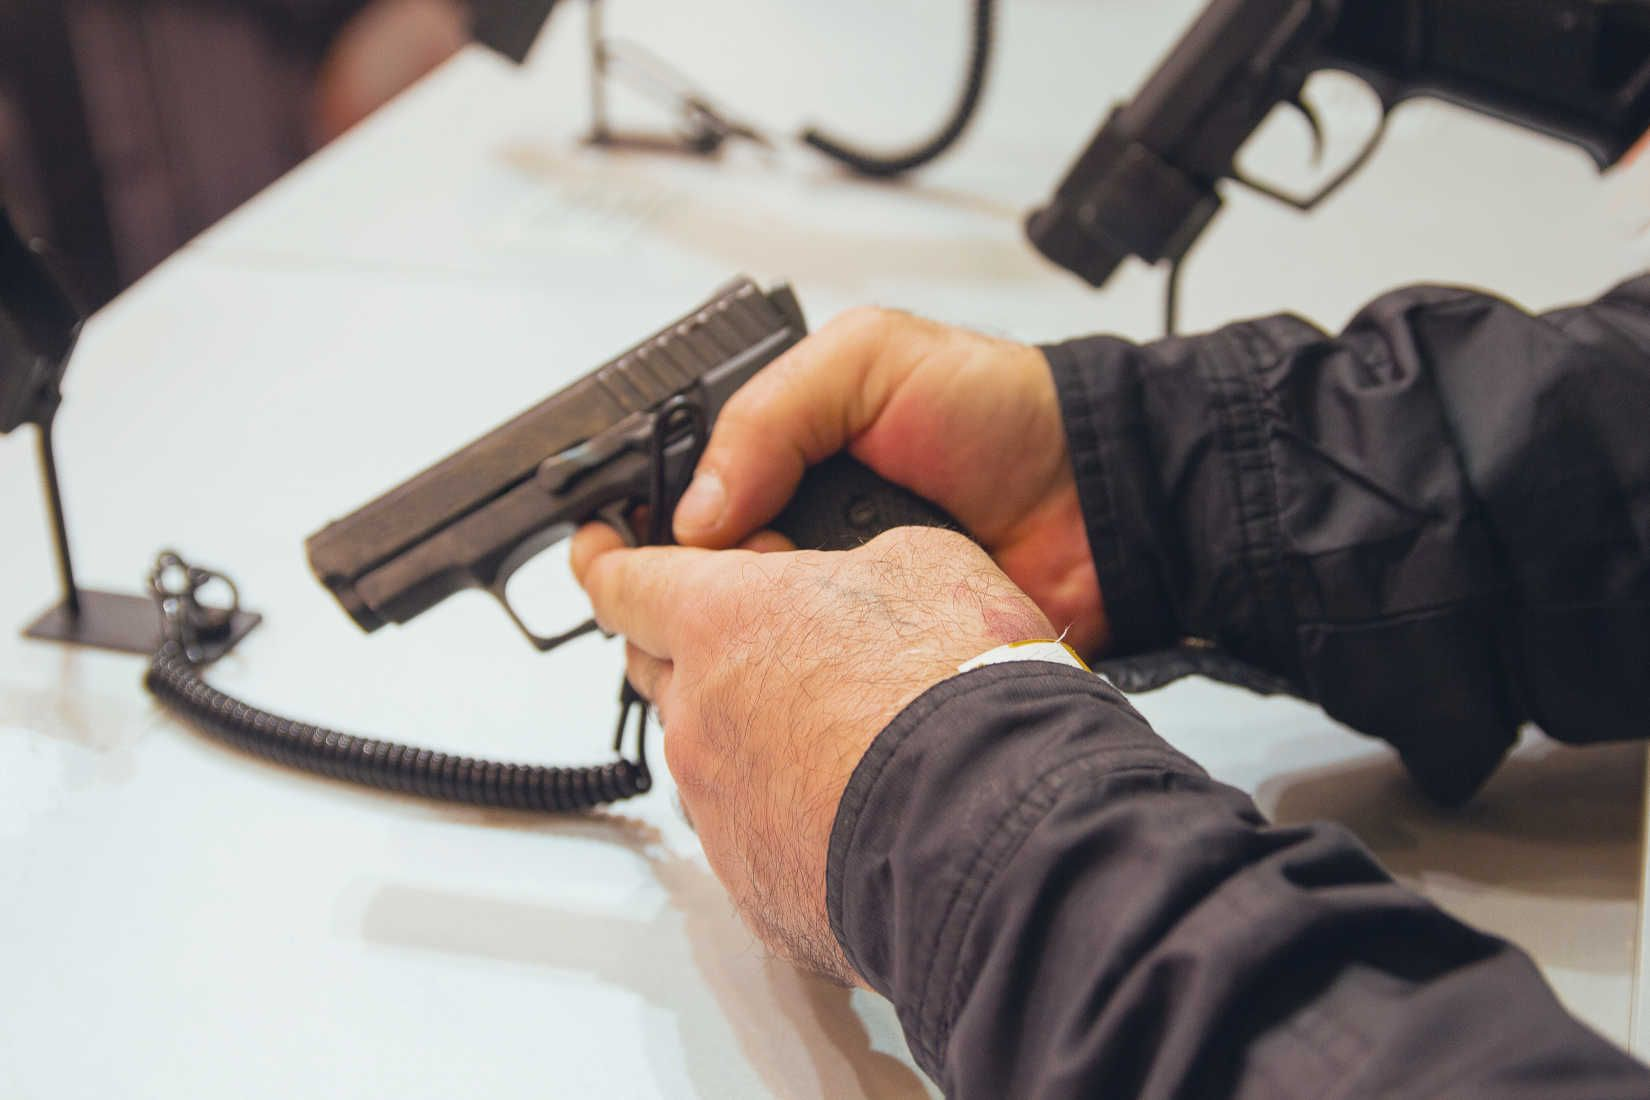 Everytown Launches 'Everytown Law Fund' to Destroy Gun Industry